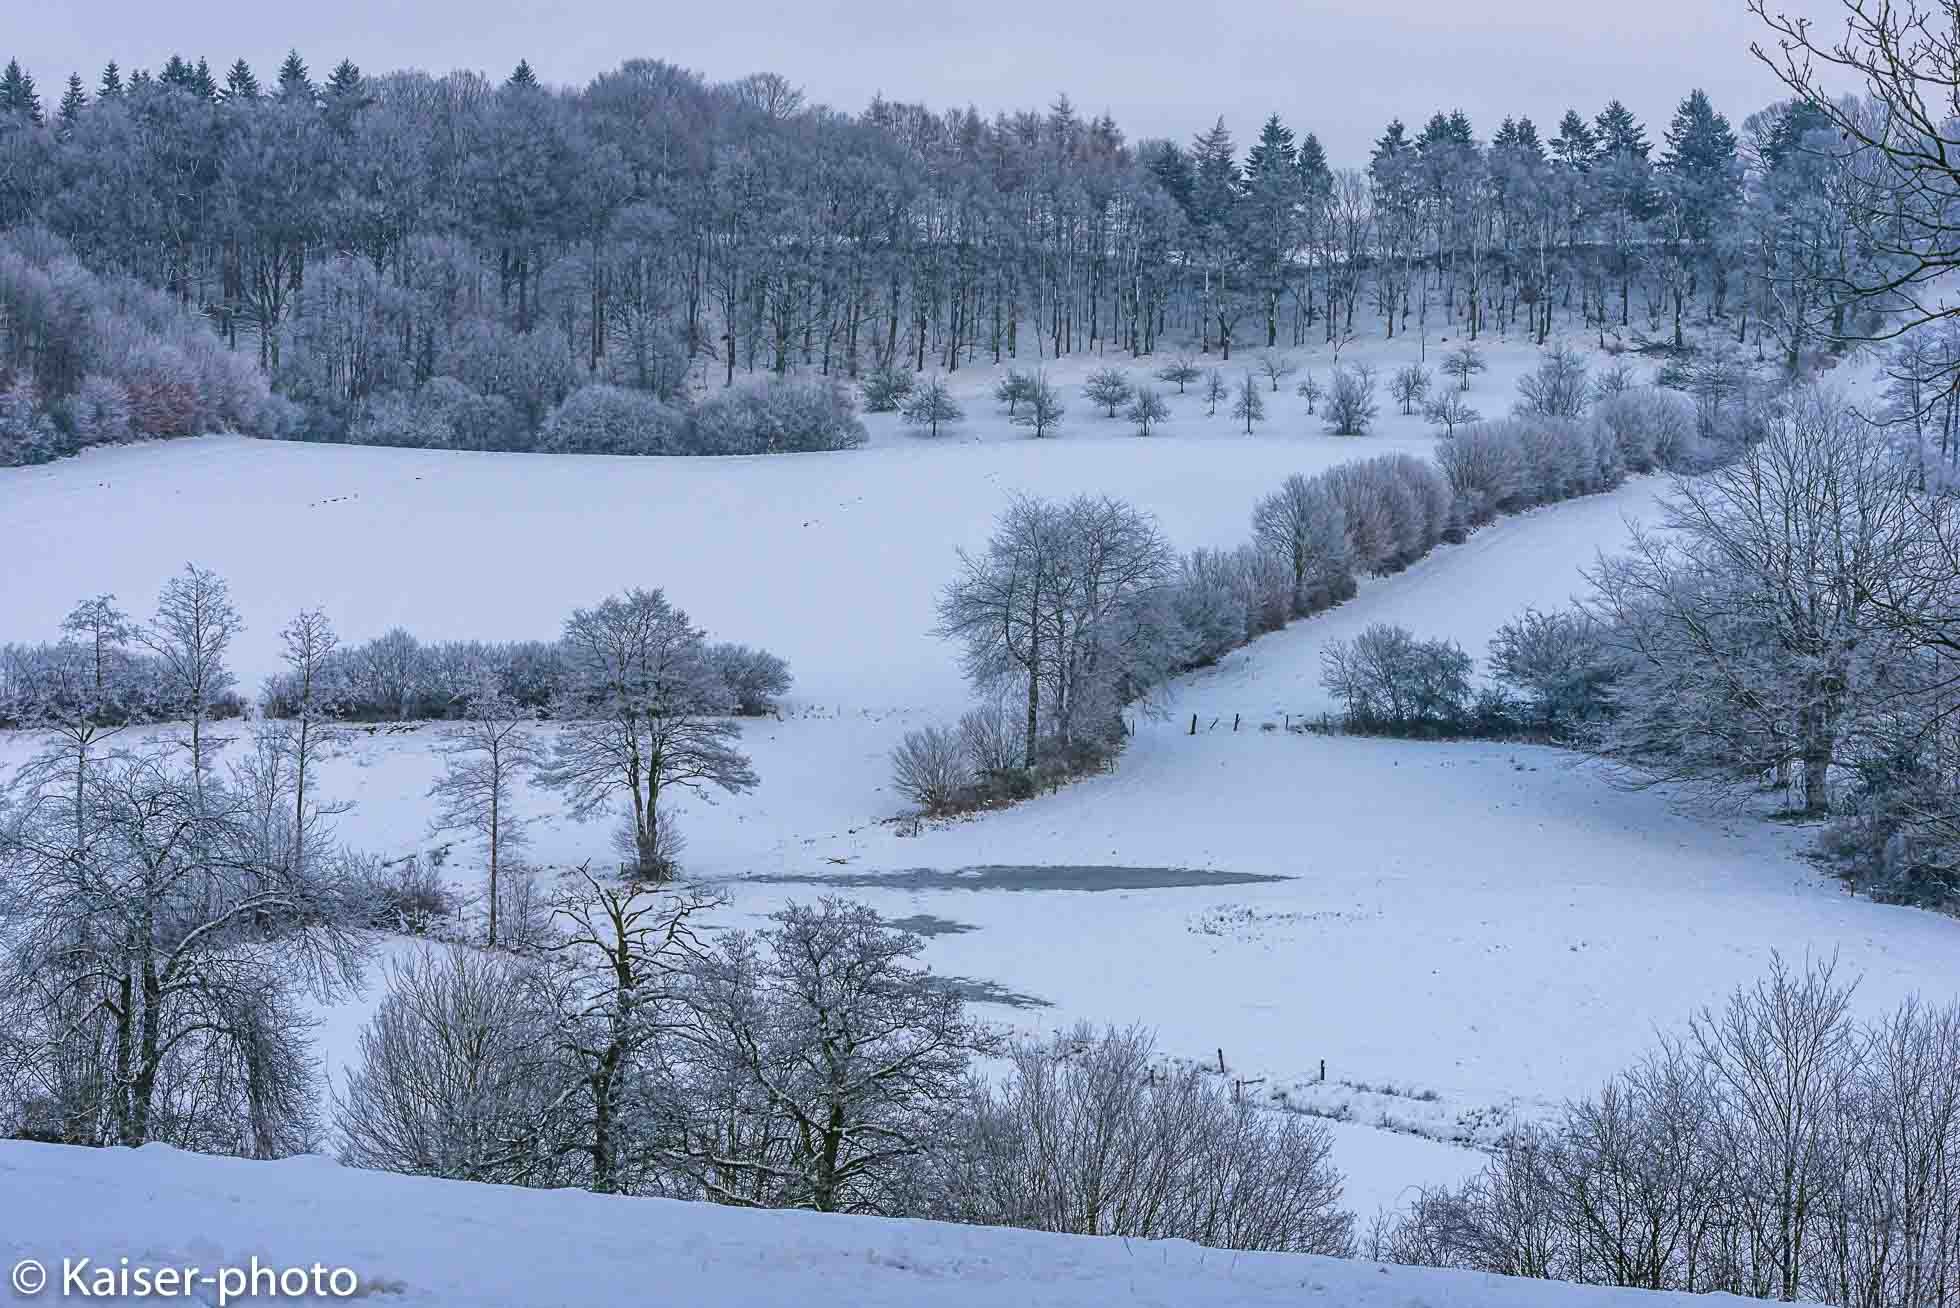 Snowy Wintertime in northern Germany